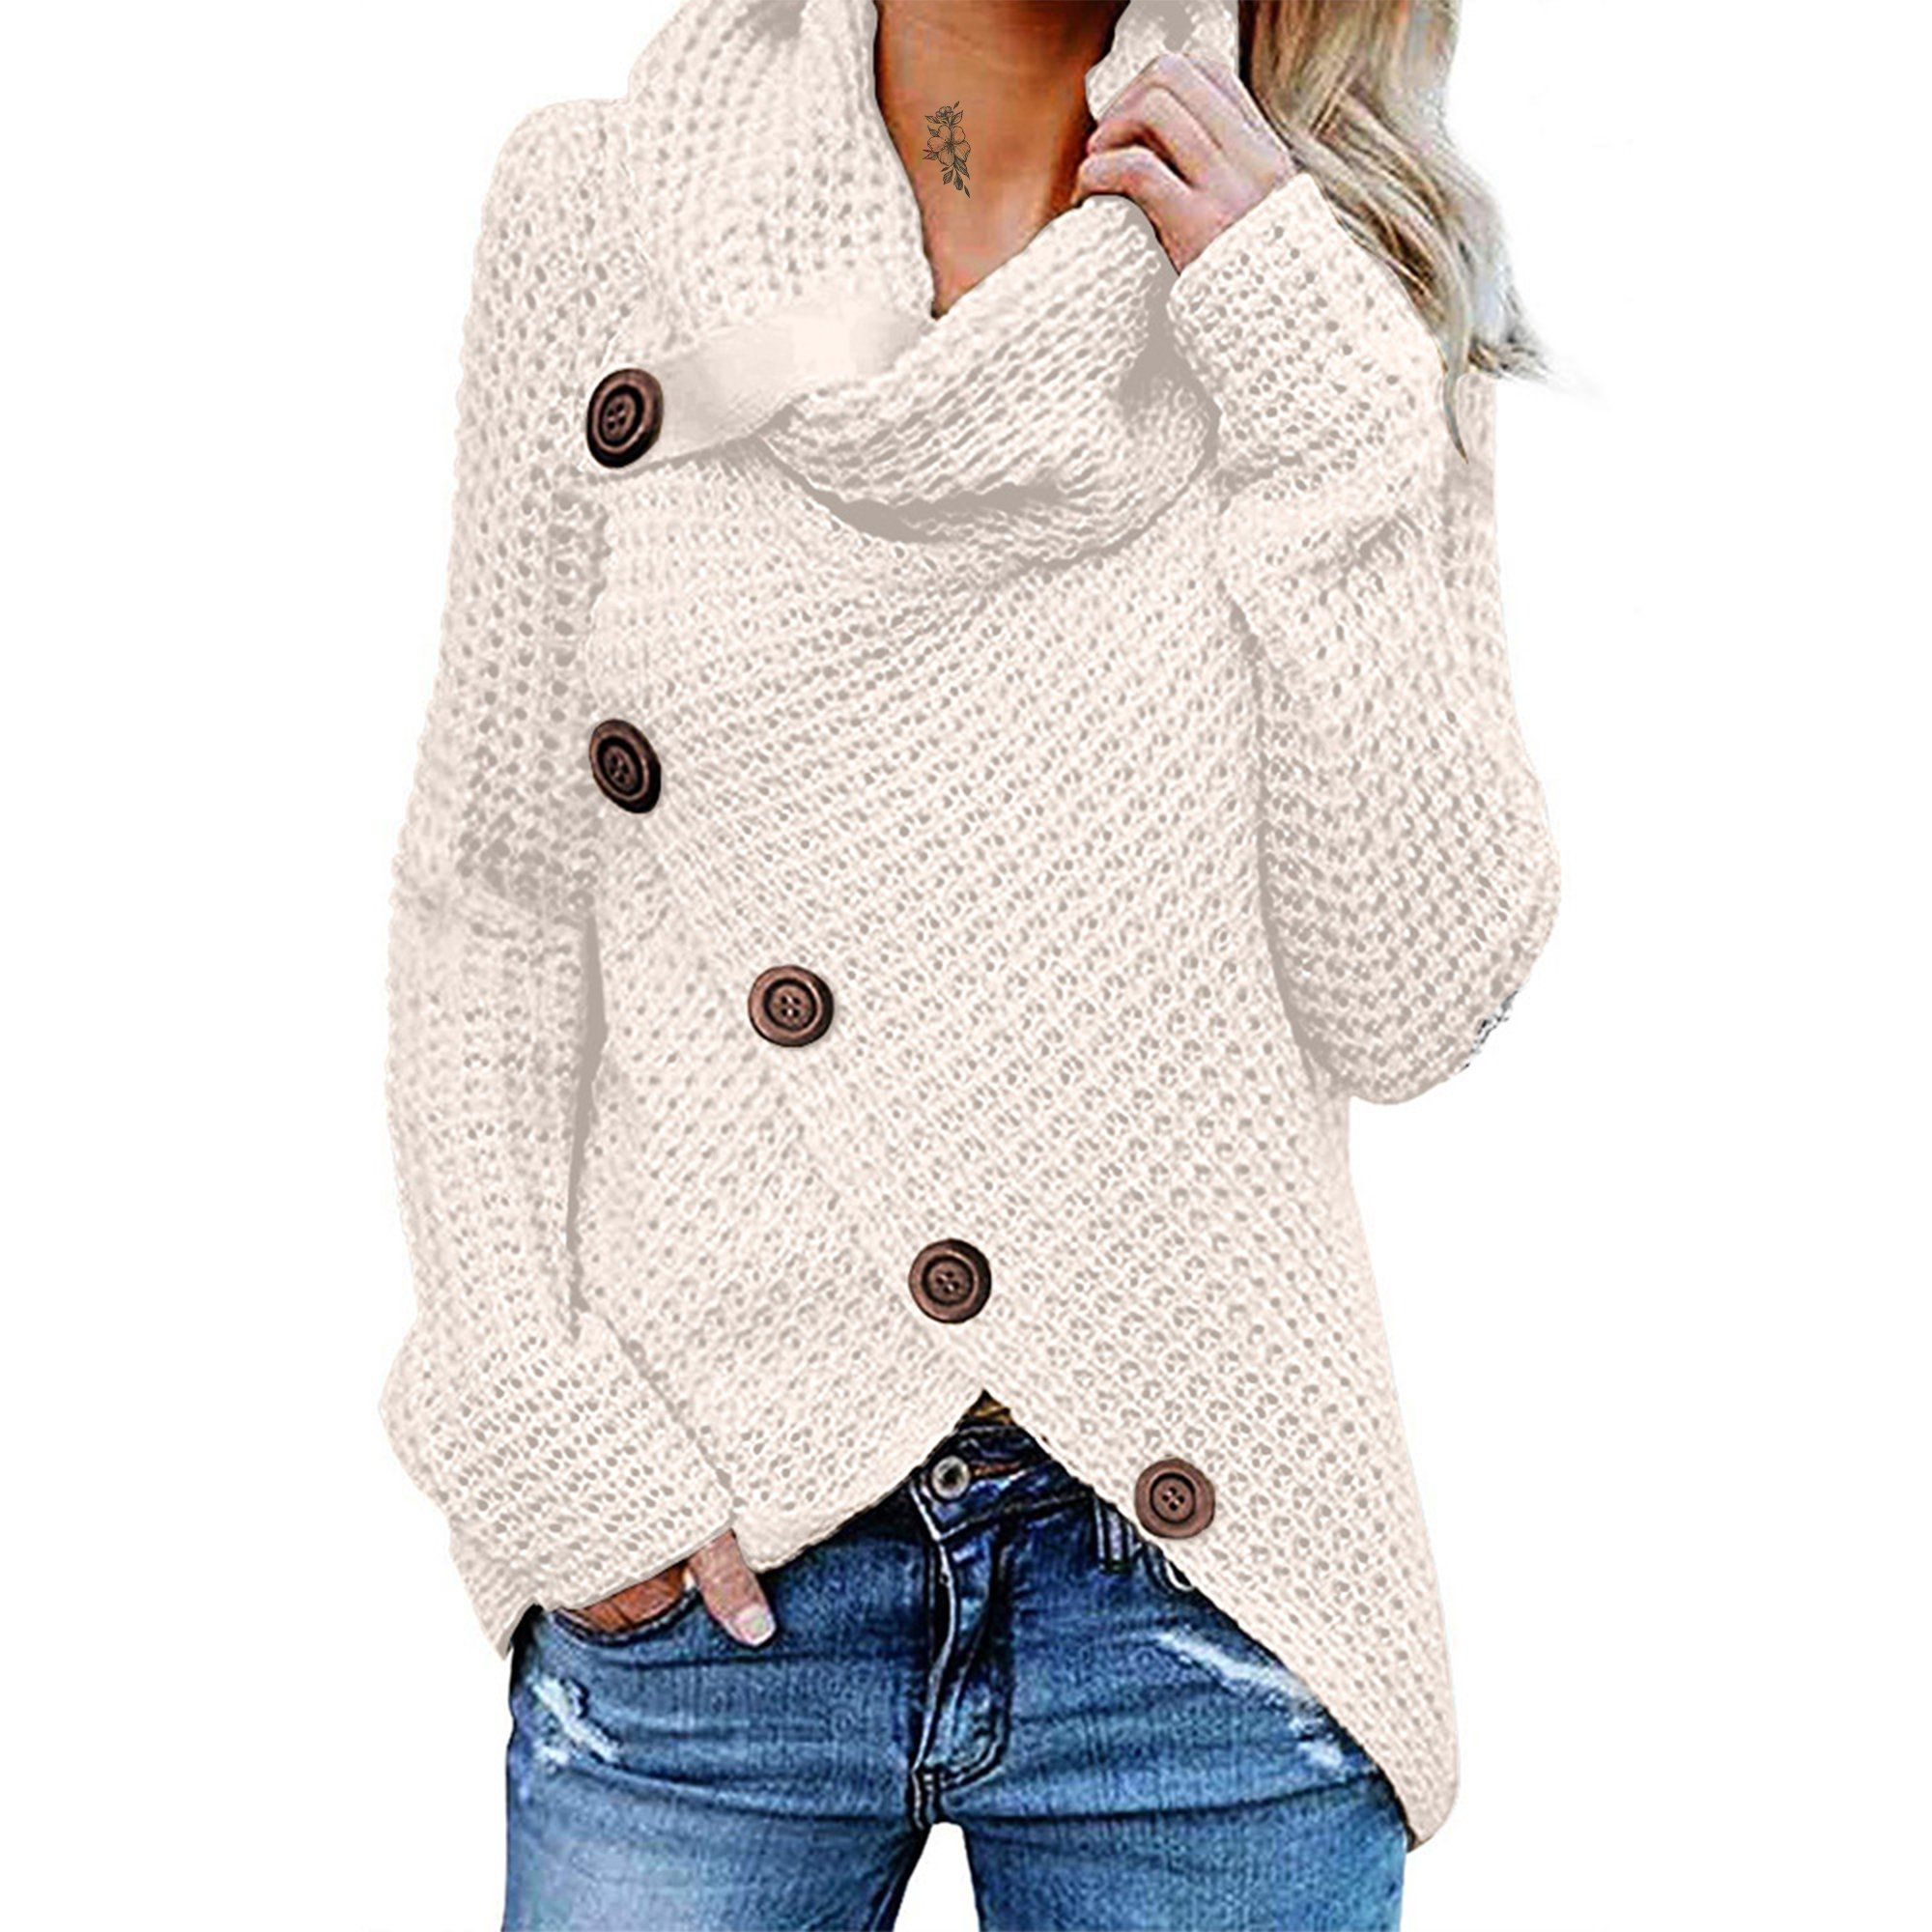 Women's Winter Warm Long Sleeve Turtleneck Knitted